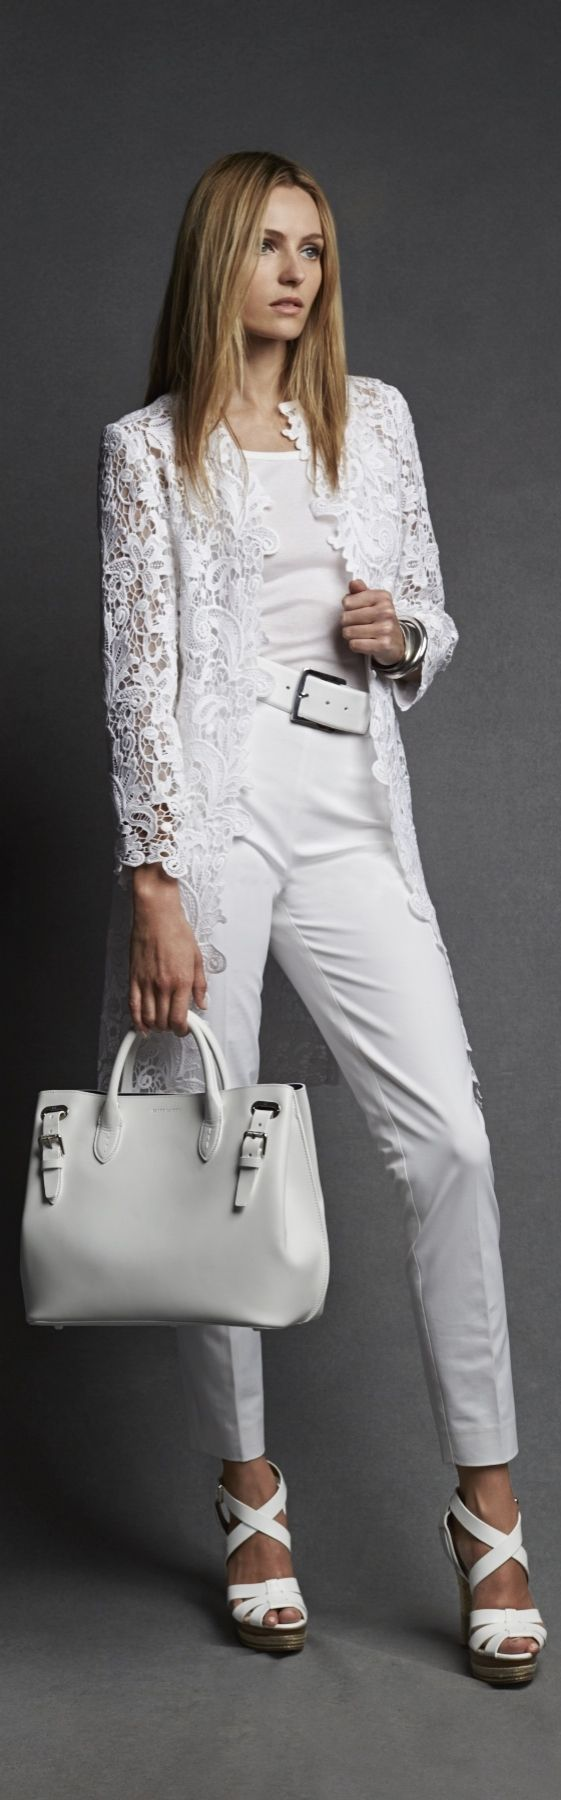 Ralph Lauren Black Label\u0026#39;s white lace Thora coat exudes gilded glamour. Via @esusansmith.